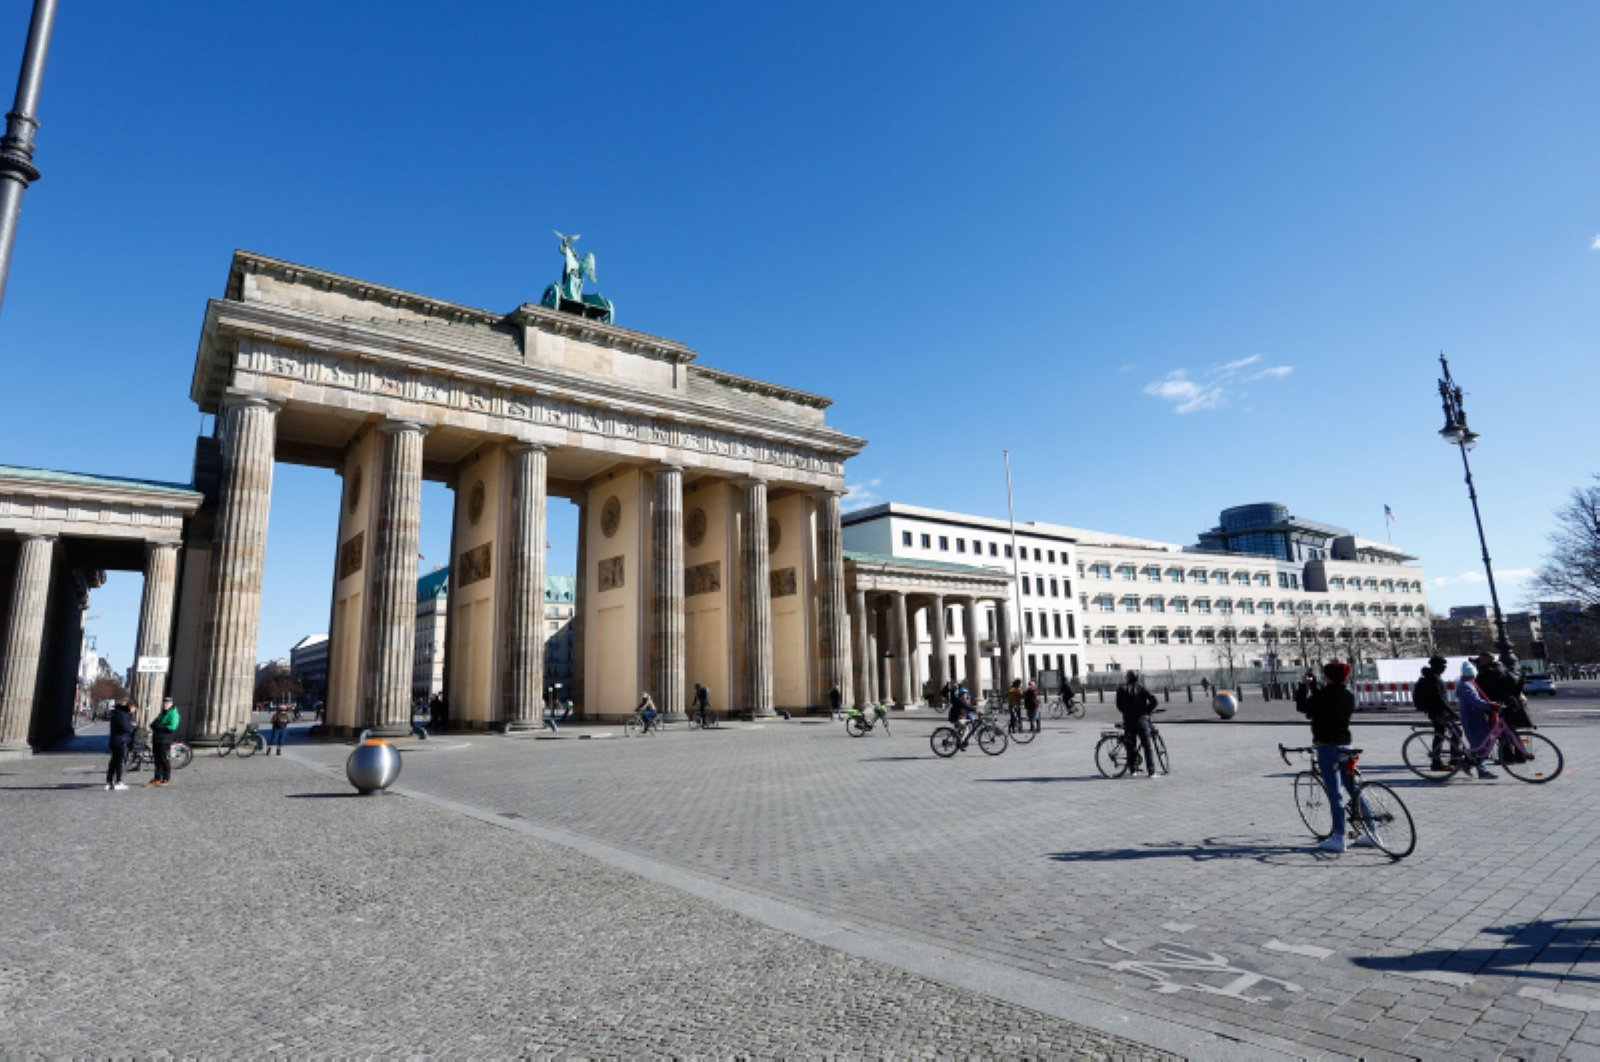 People stroll at the Pariser Platz in front of the Brandenburg Gate in Berlin, Germany, March 22, 2020, as the spread of the novel coronavirus continues. (Reuters Photo)